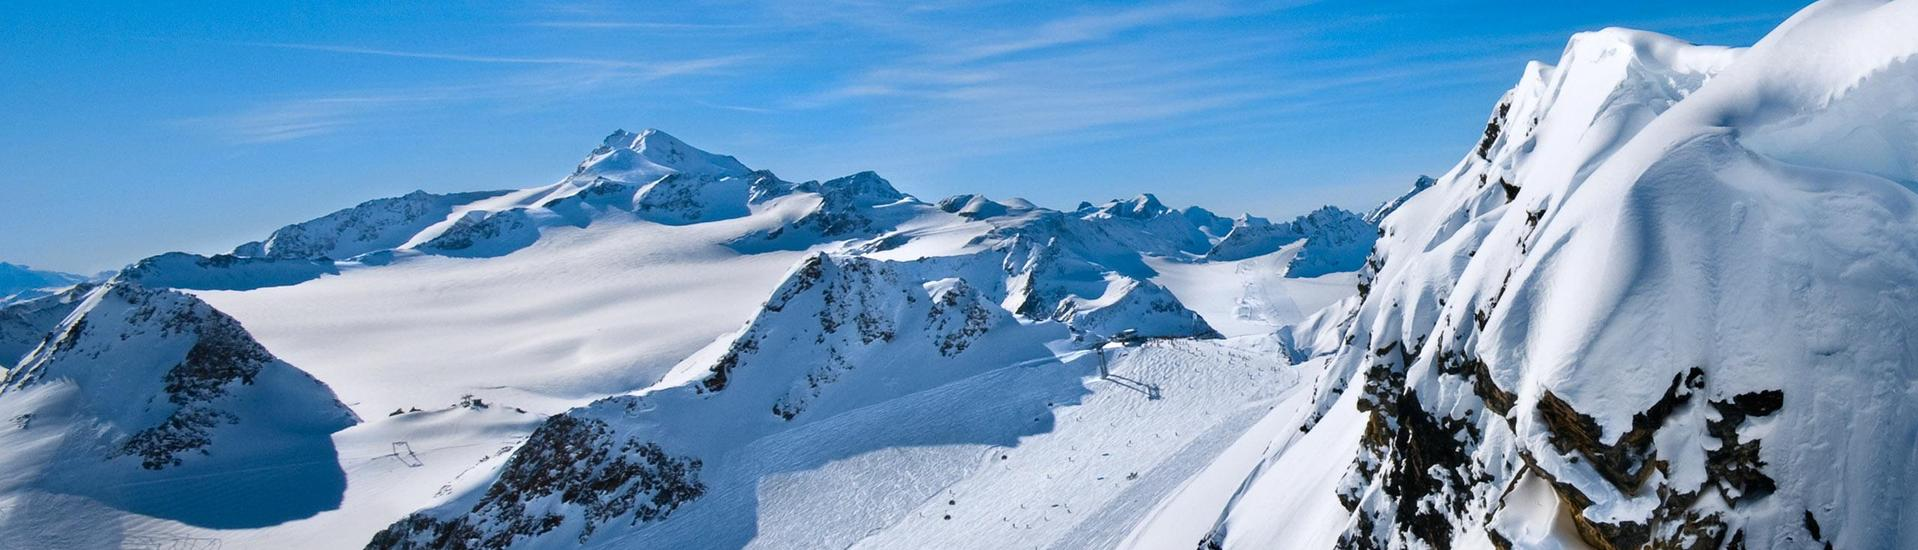 A view of a snowy mountain top in the ski resort of La Toussuire, where ski schools gather to start their ski lessons.